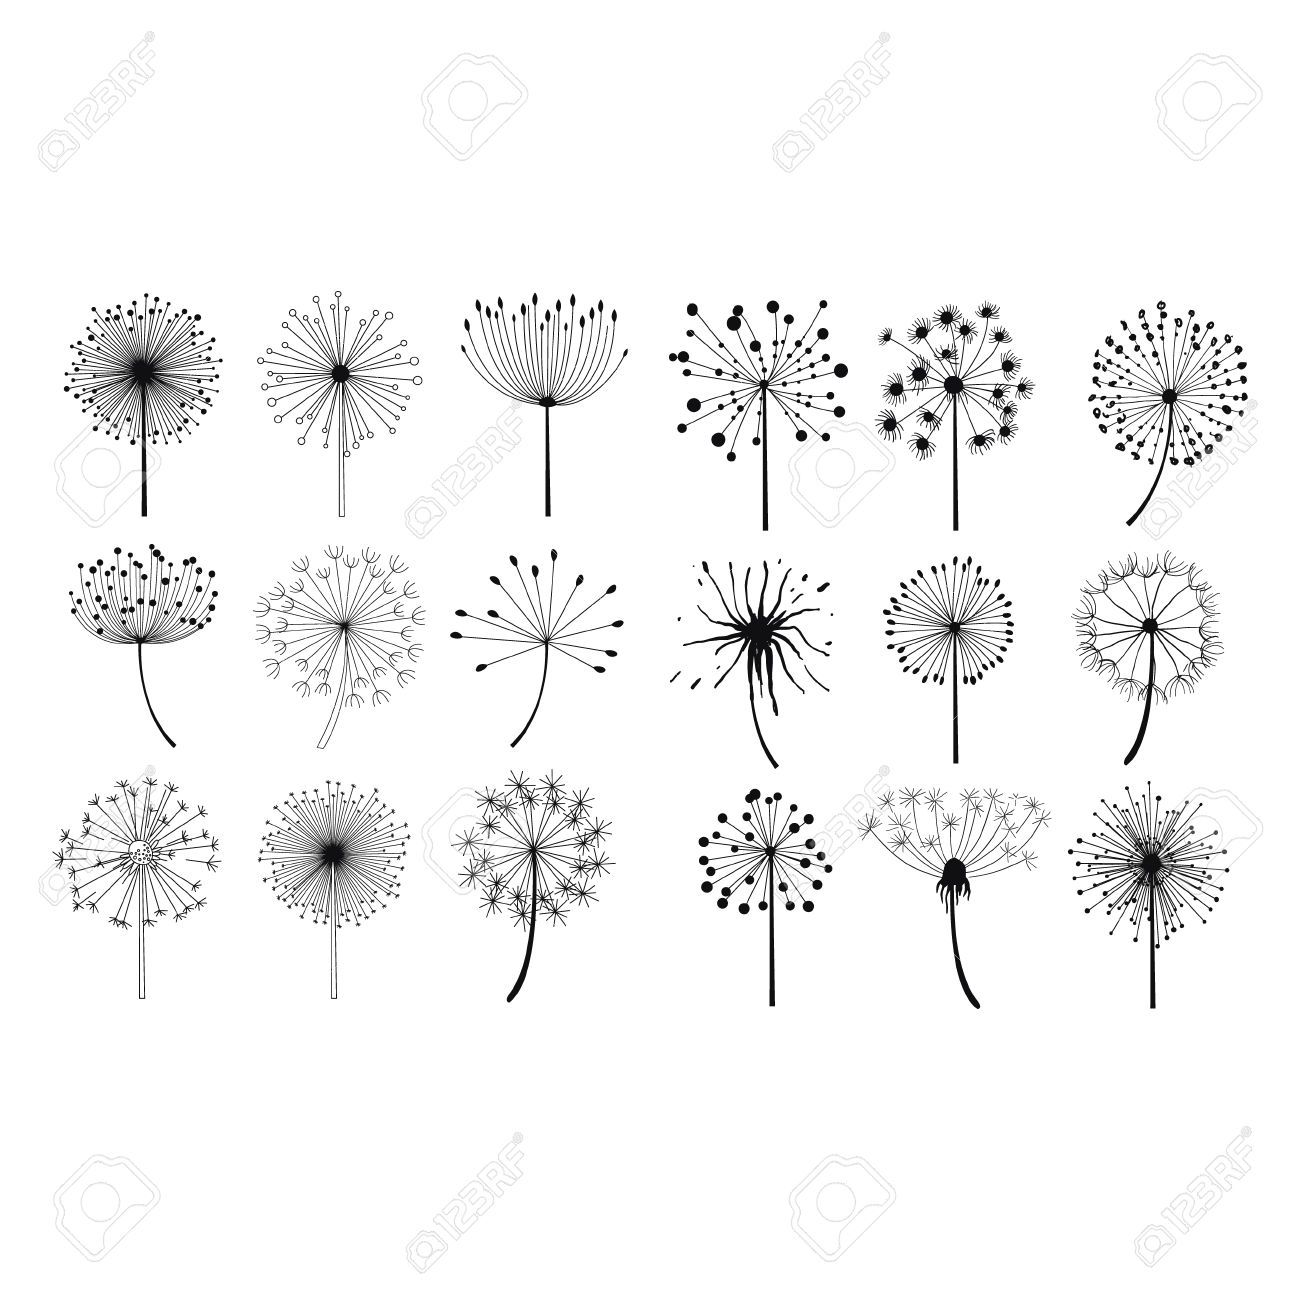 55499242-Dandelion-Fluffy-Seeds-Flowers-Hand-Drawn-Doodle-Style-Black-And-White-Drawing-Vector-Icons-Set-Stock-Vector.jpg (1300×1300)